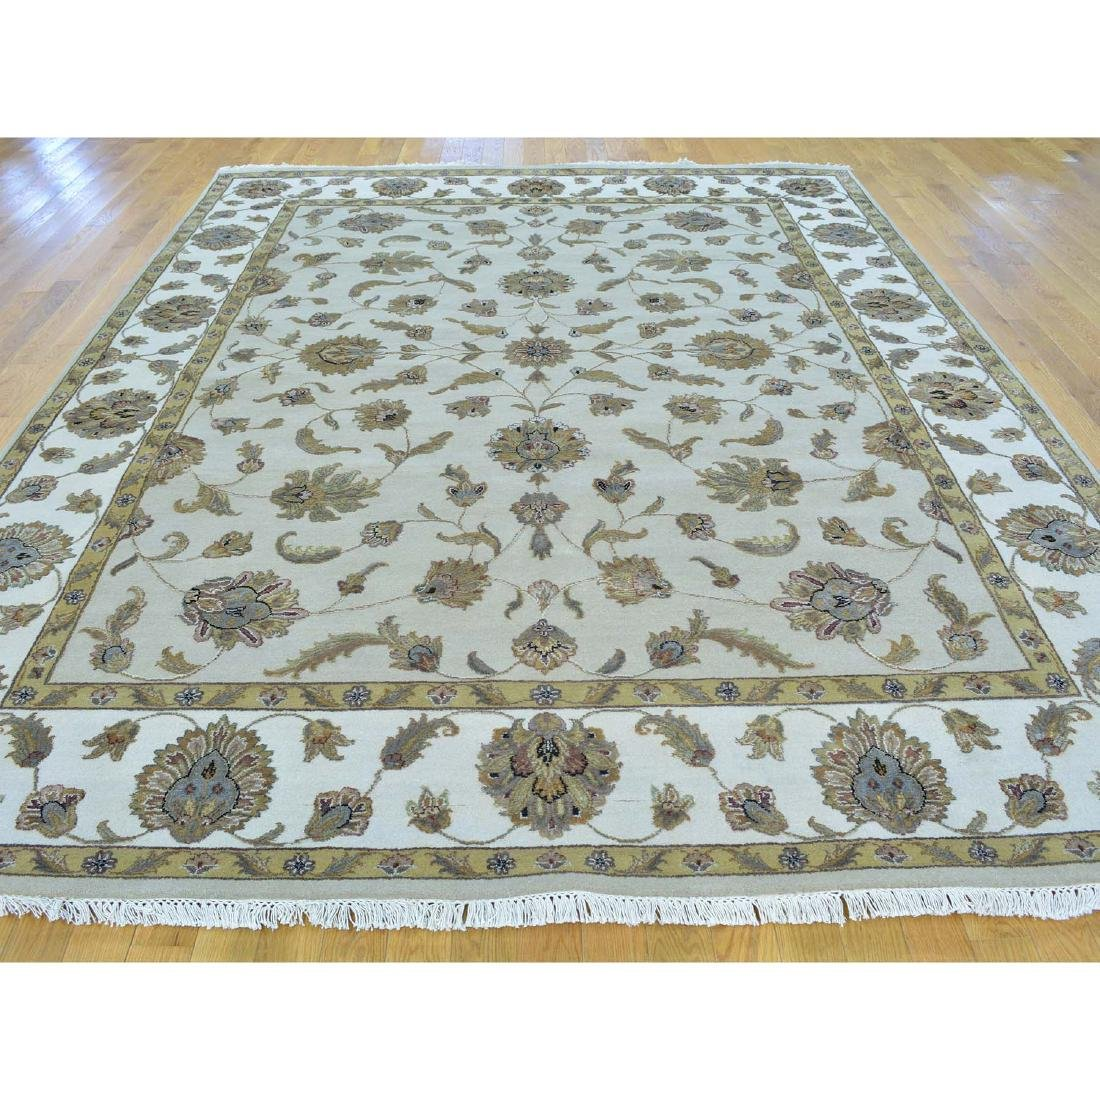 Rajasthan Wool and Silk Hand Knotted Oriental Rug - 2